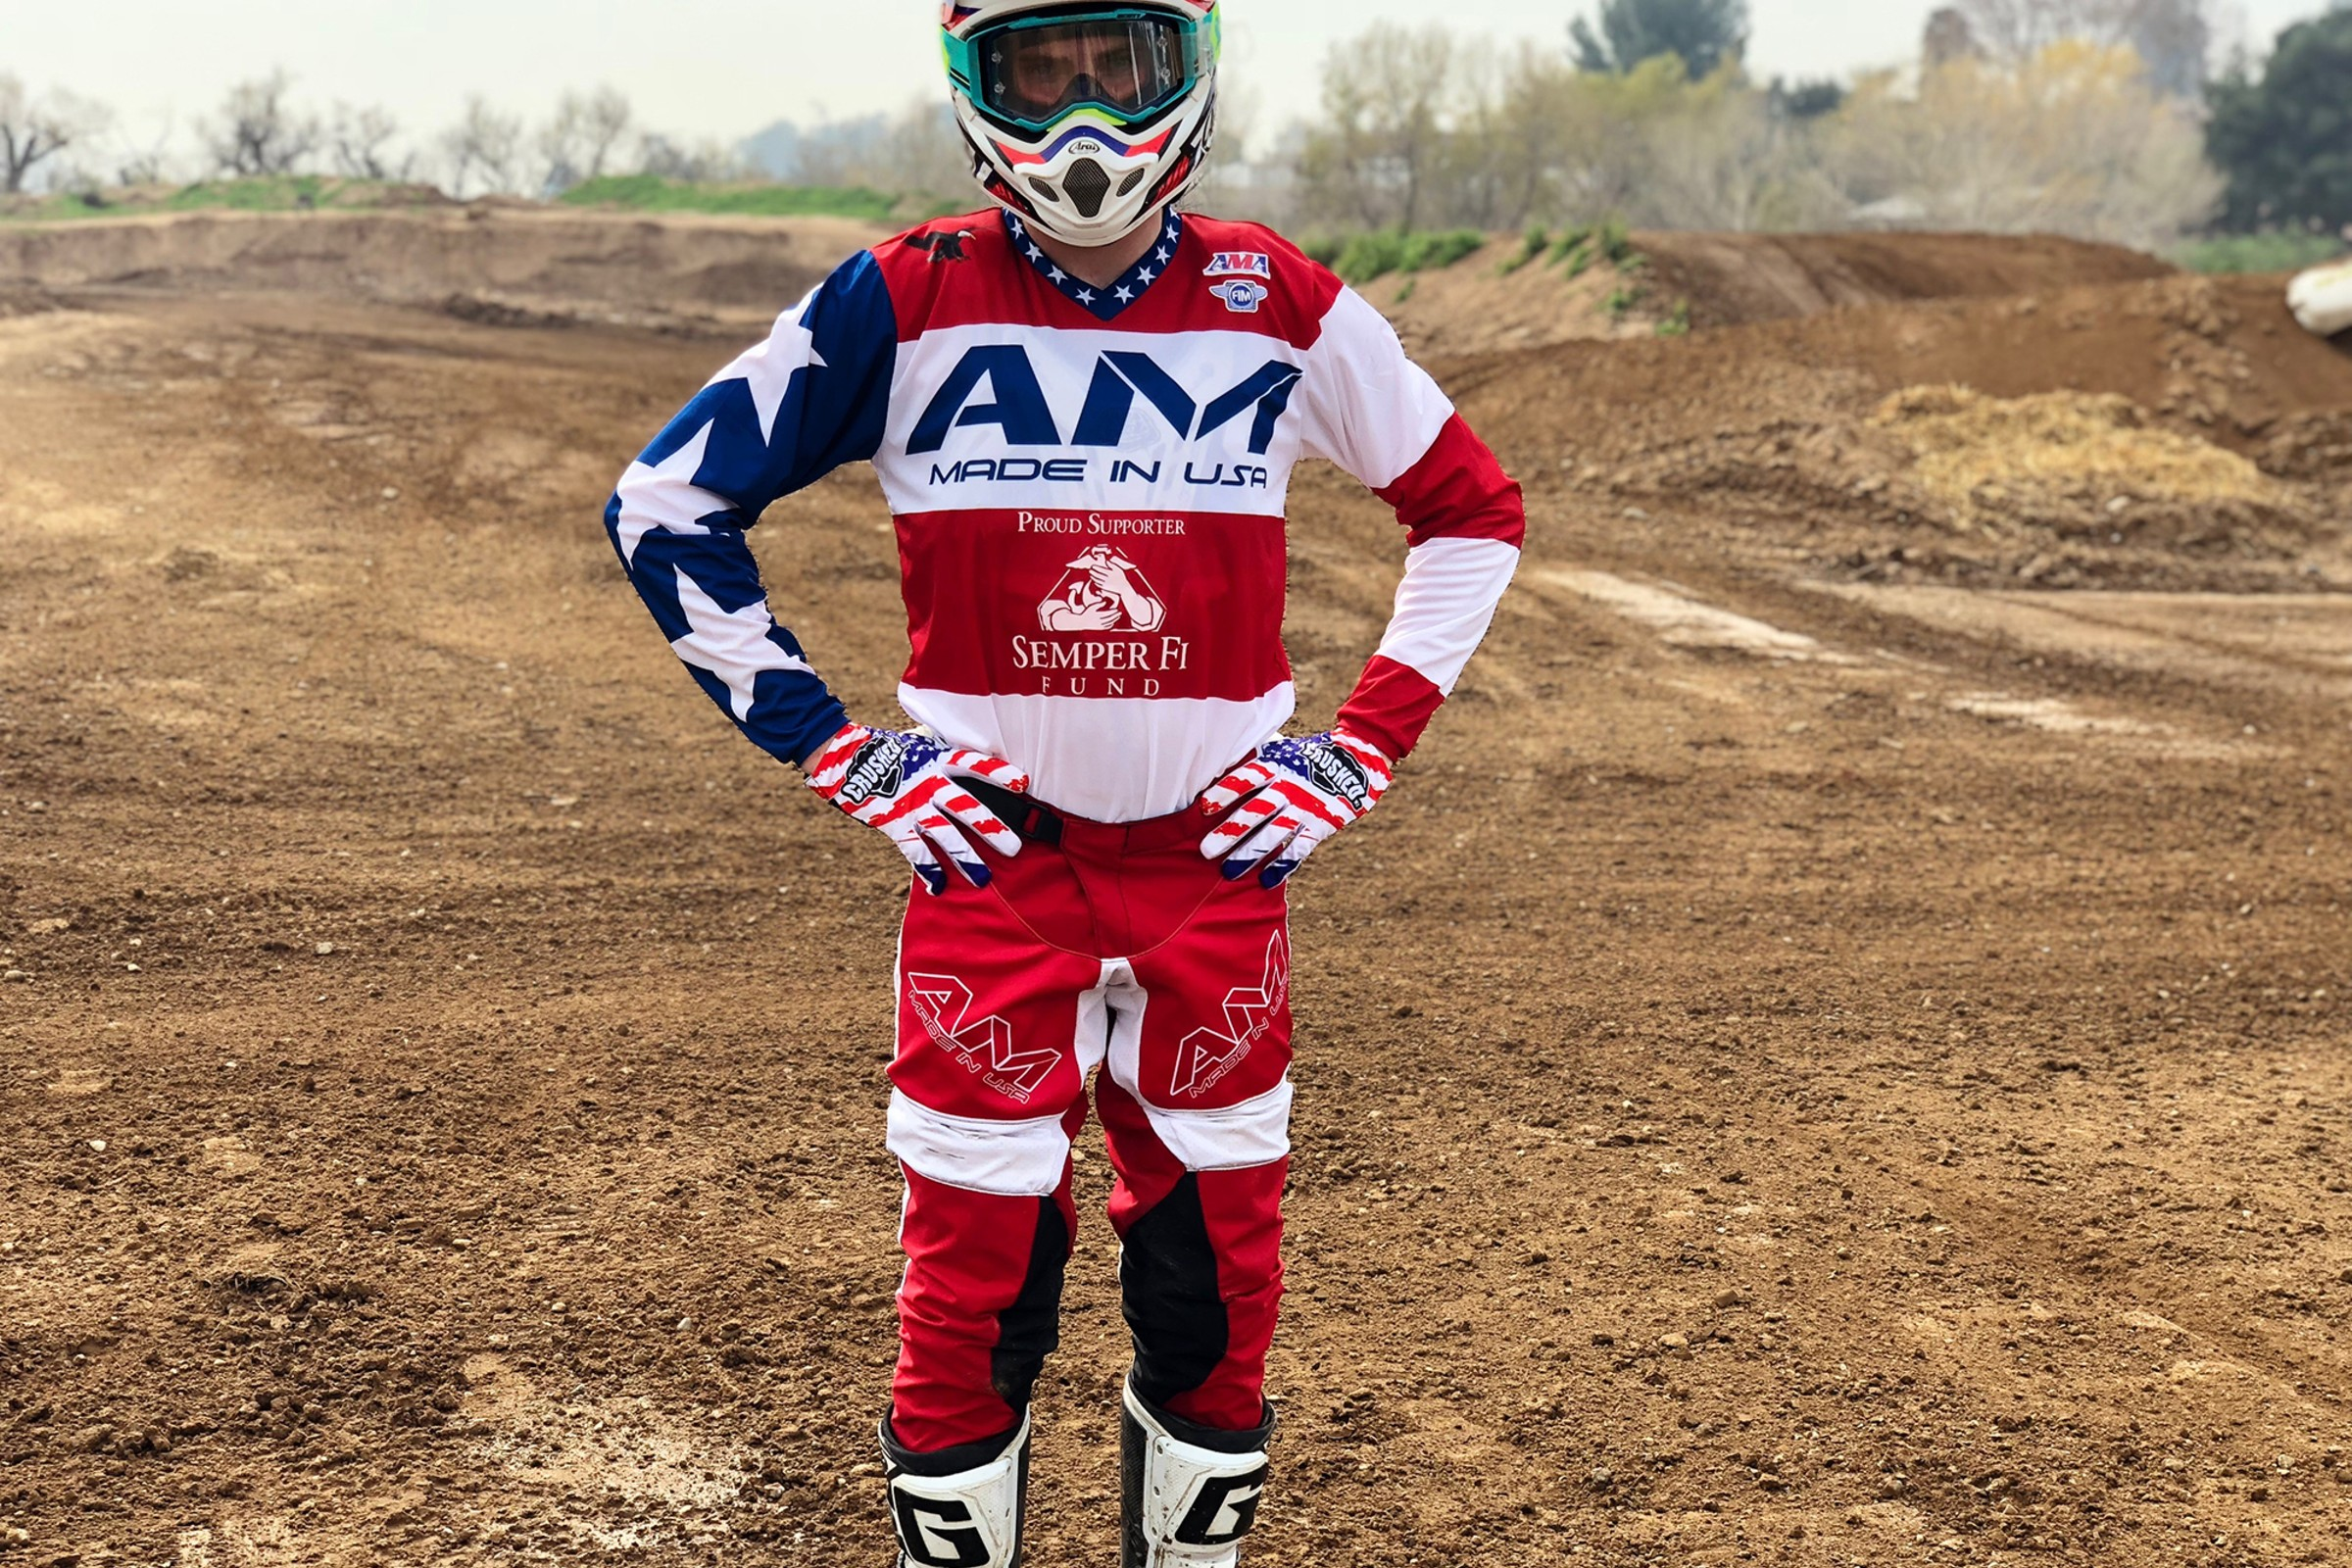 Cade Autenrieth SX Jersey & AM Gear Raffle to Benefit the Semper Fi Fund